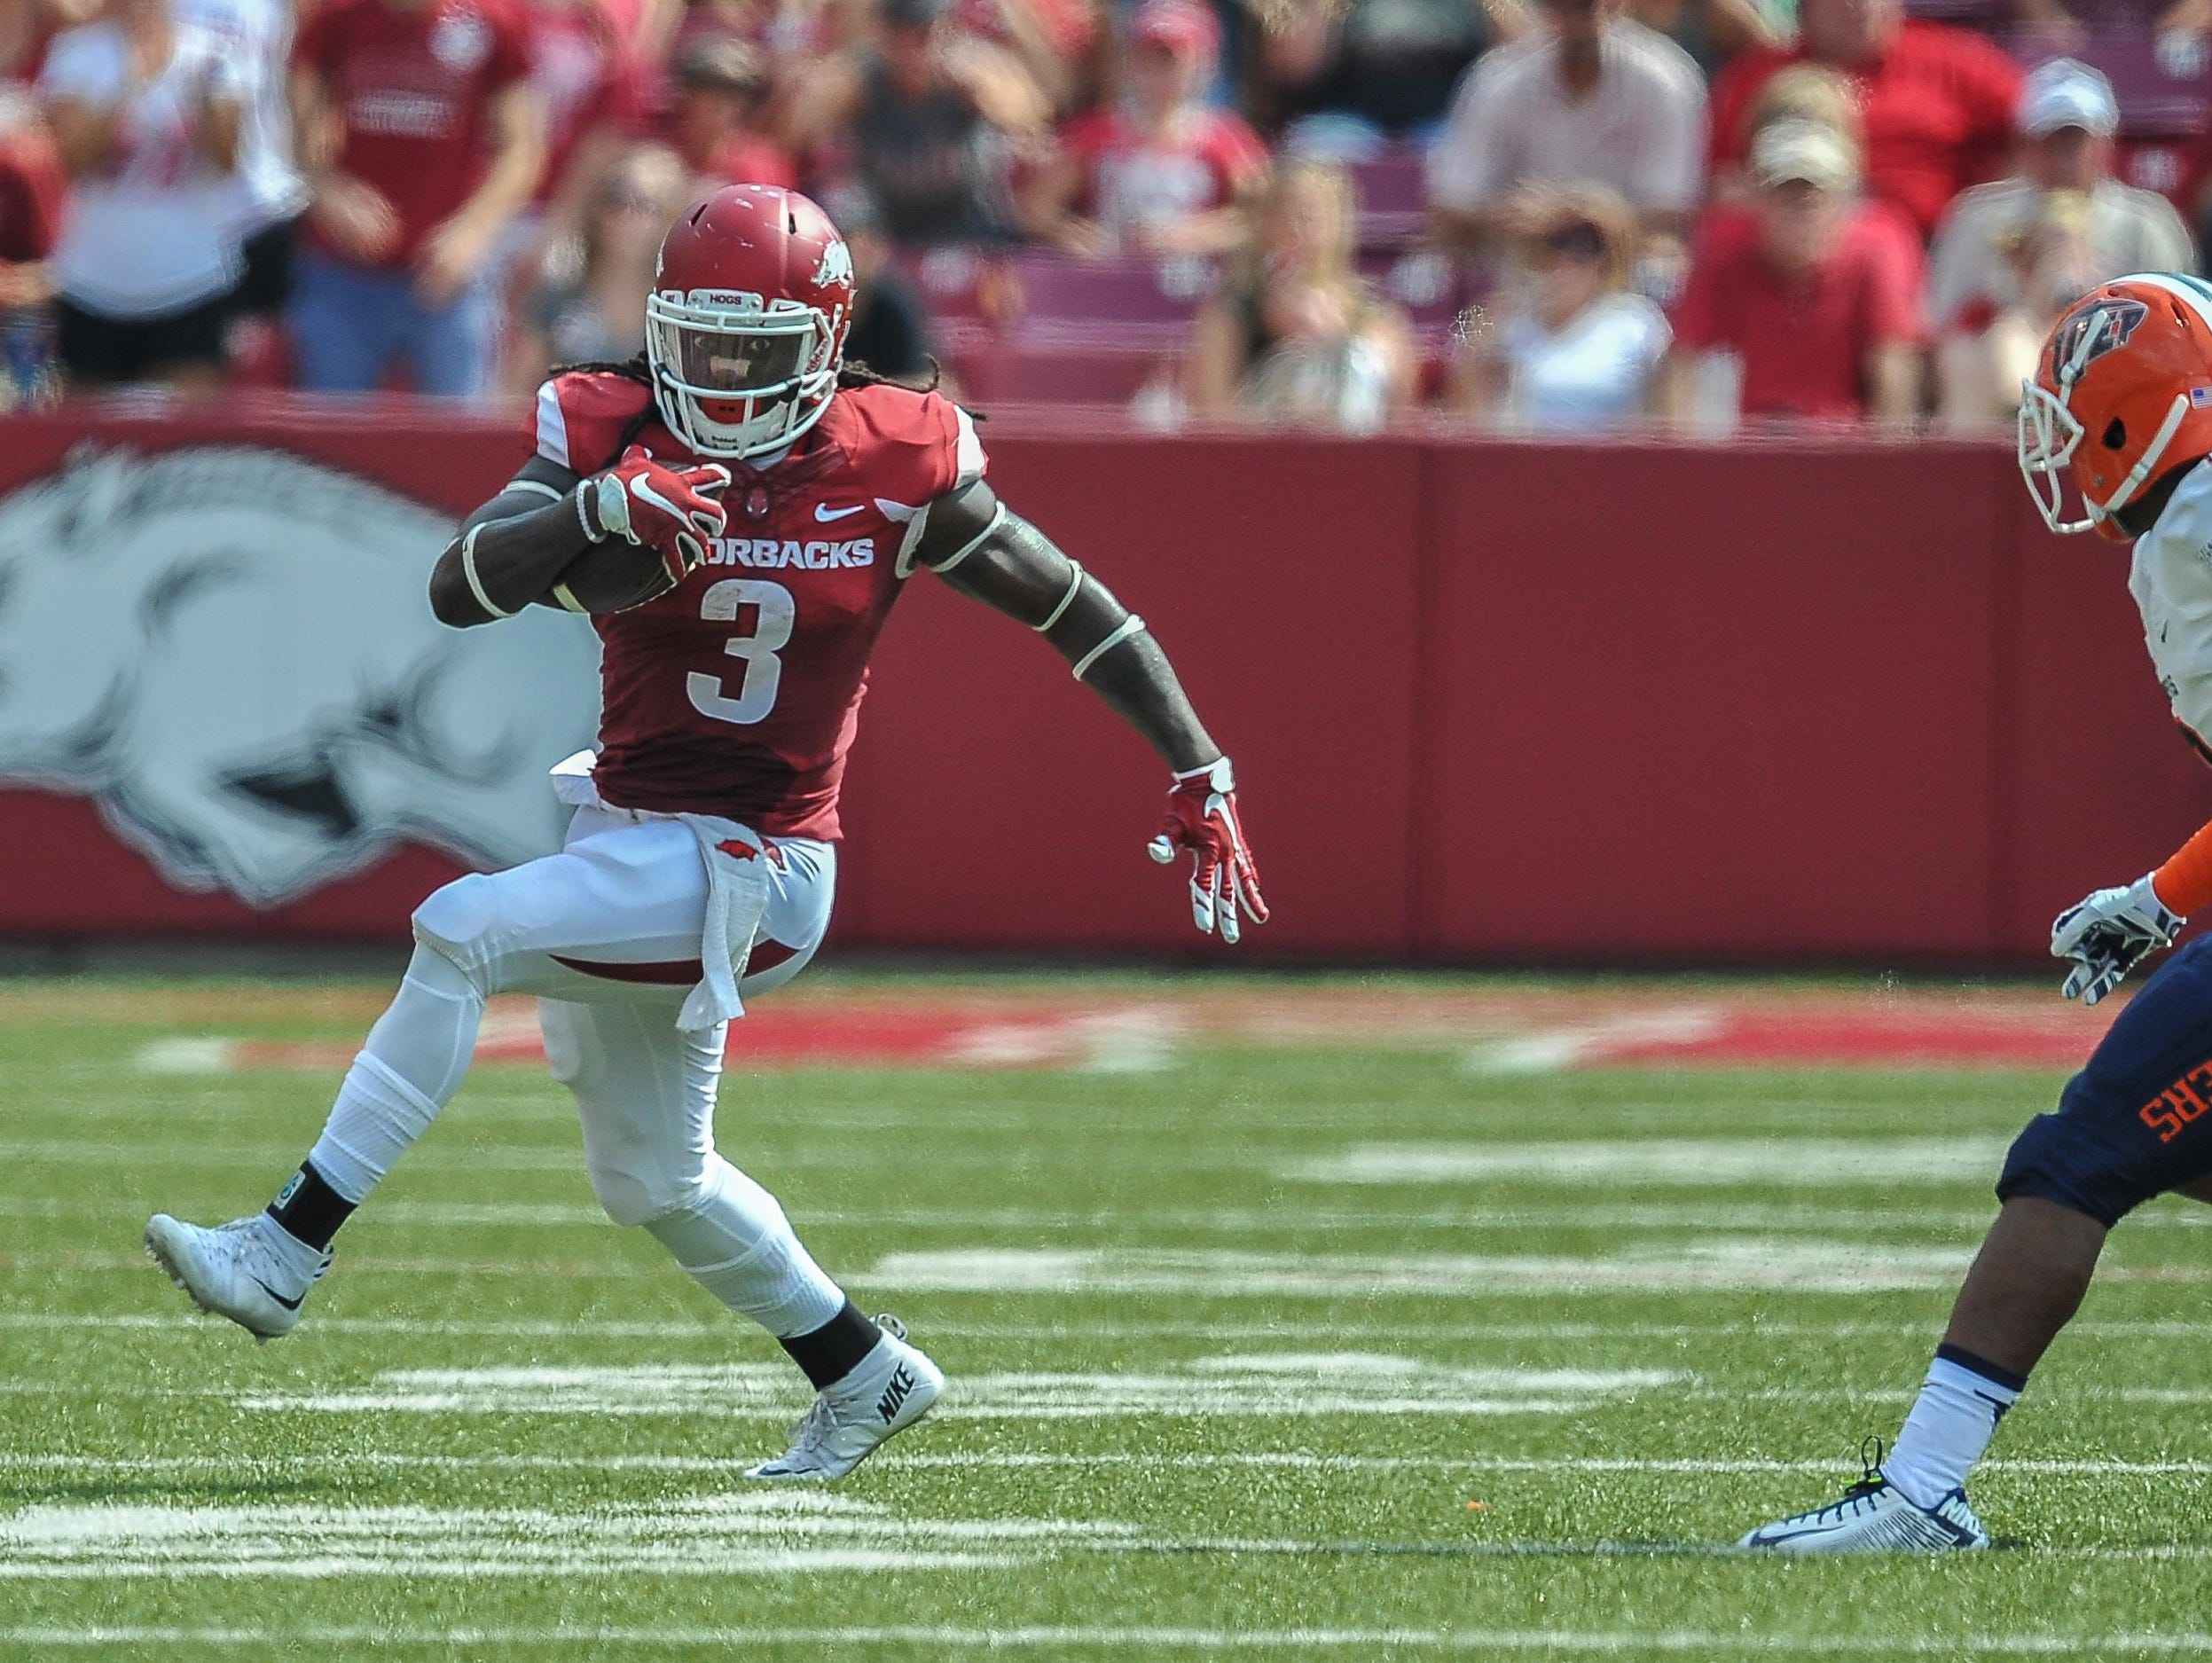 After rushing for 127 yards and a touchdown in Arkansas' 48-13 win over UTEP, junior running back Alex Collins was one of three Razorbacks named Offensive Player of the Game by head coach Bret Bielema.